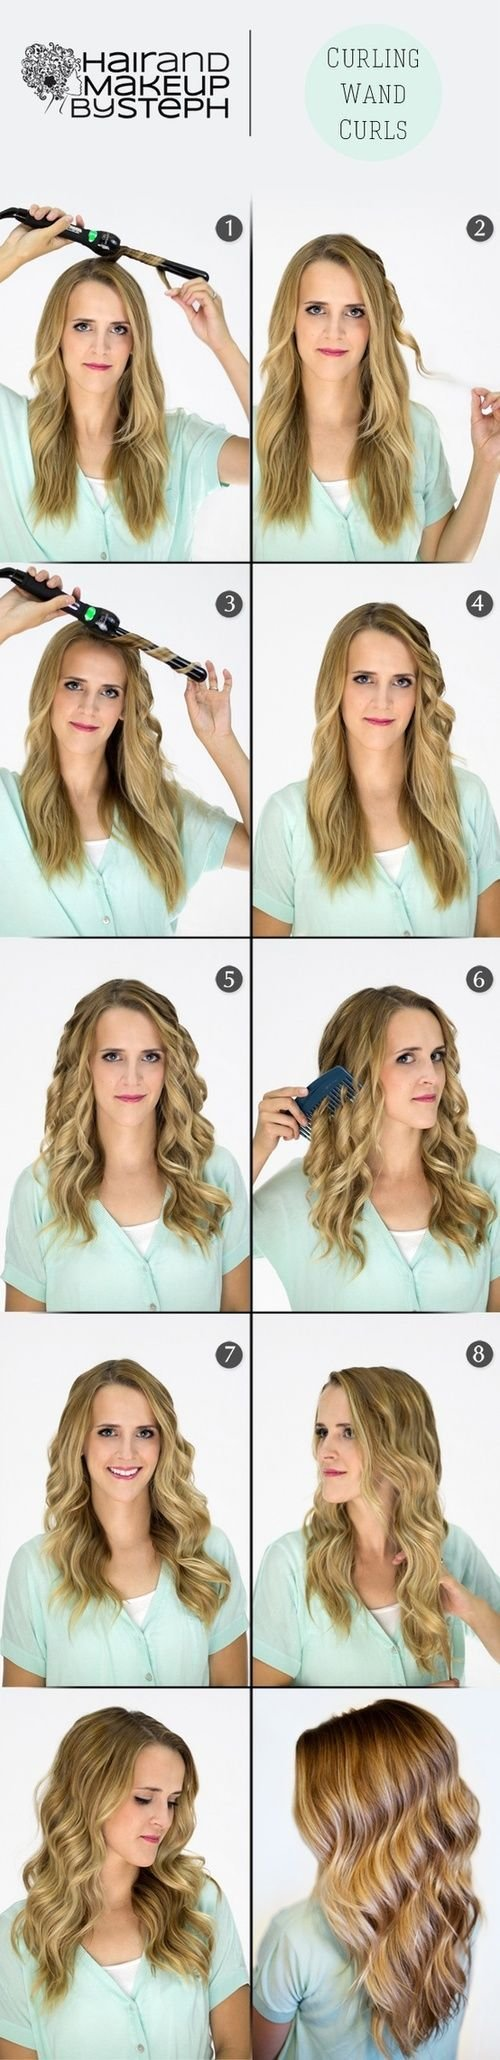 The Best 1000 Ideas About Curling Wand Curls On Pinterest Easy Pictures